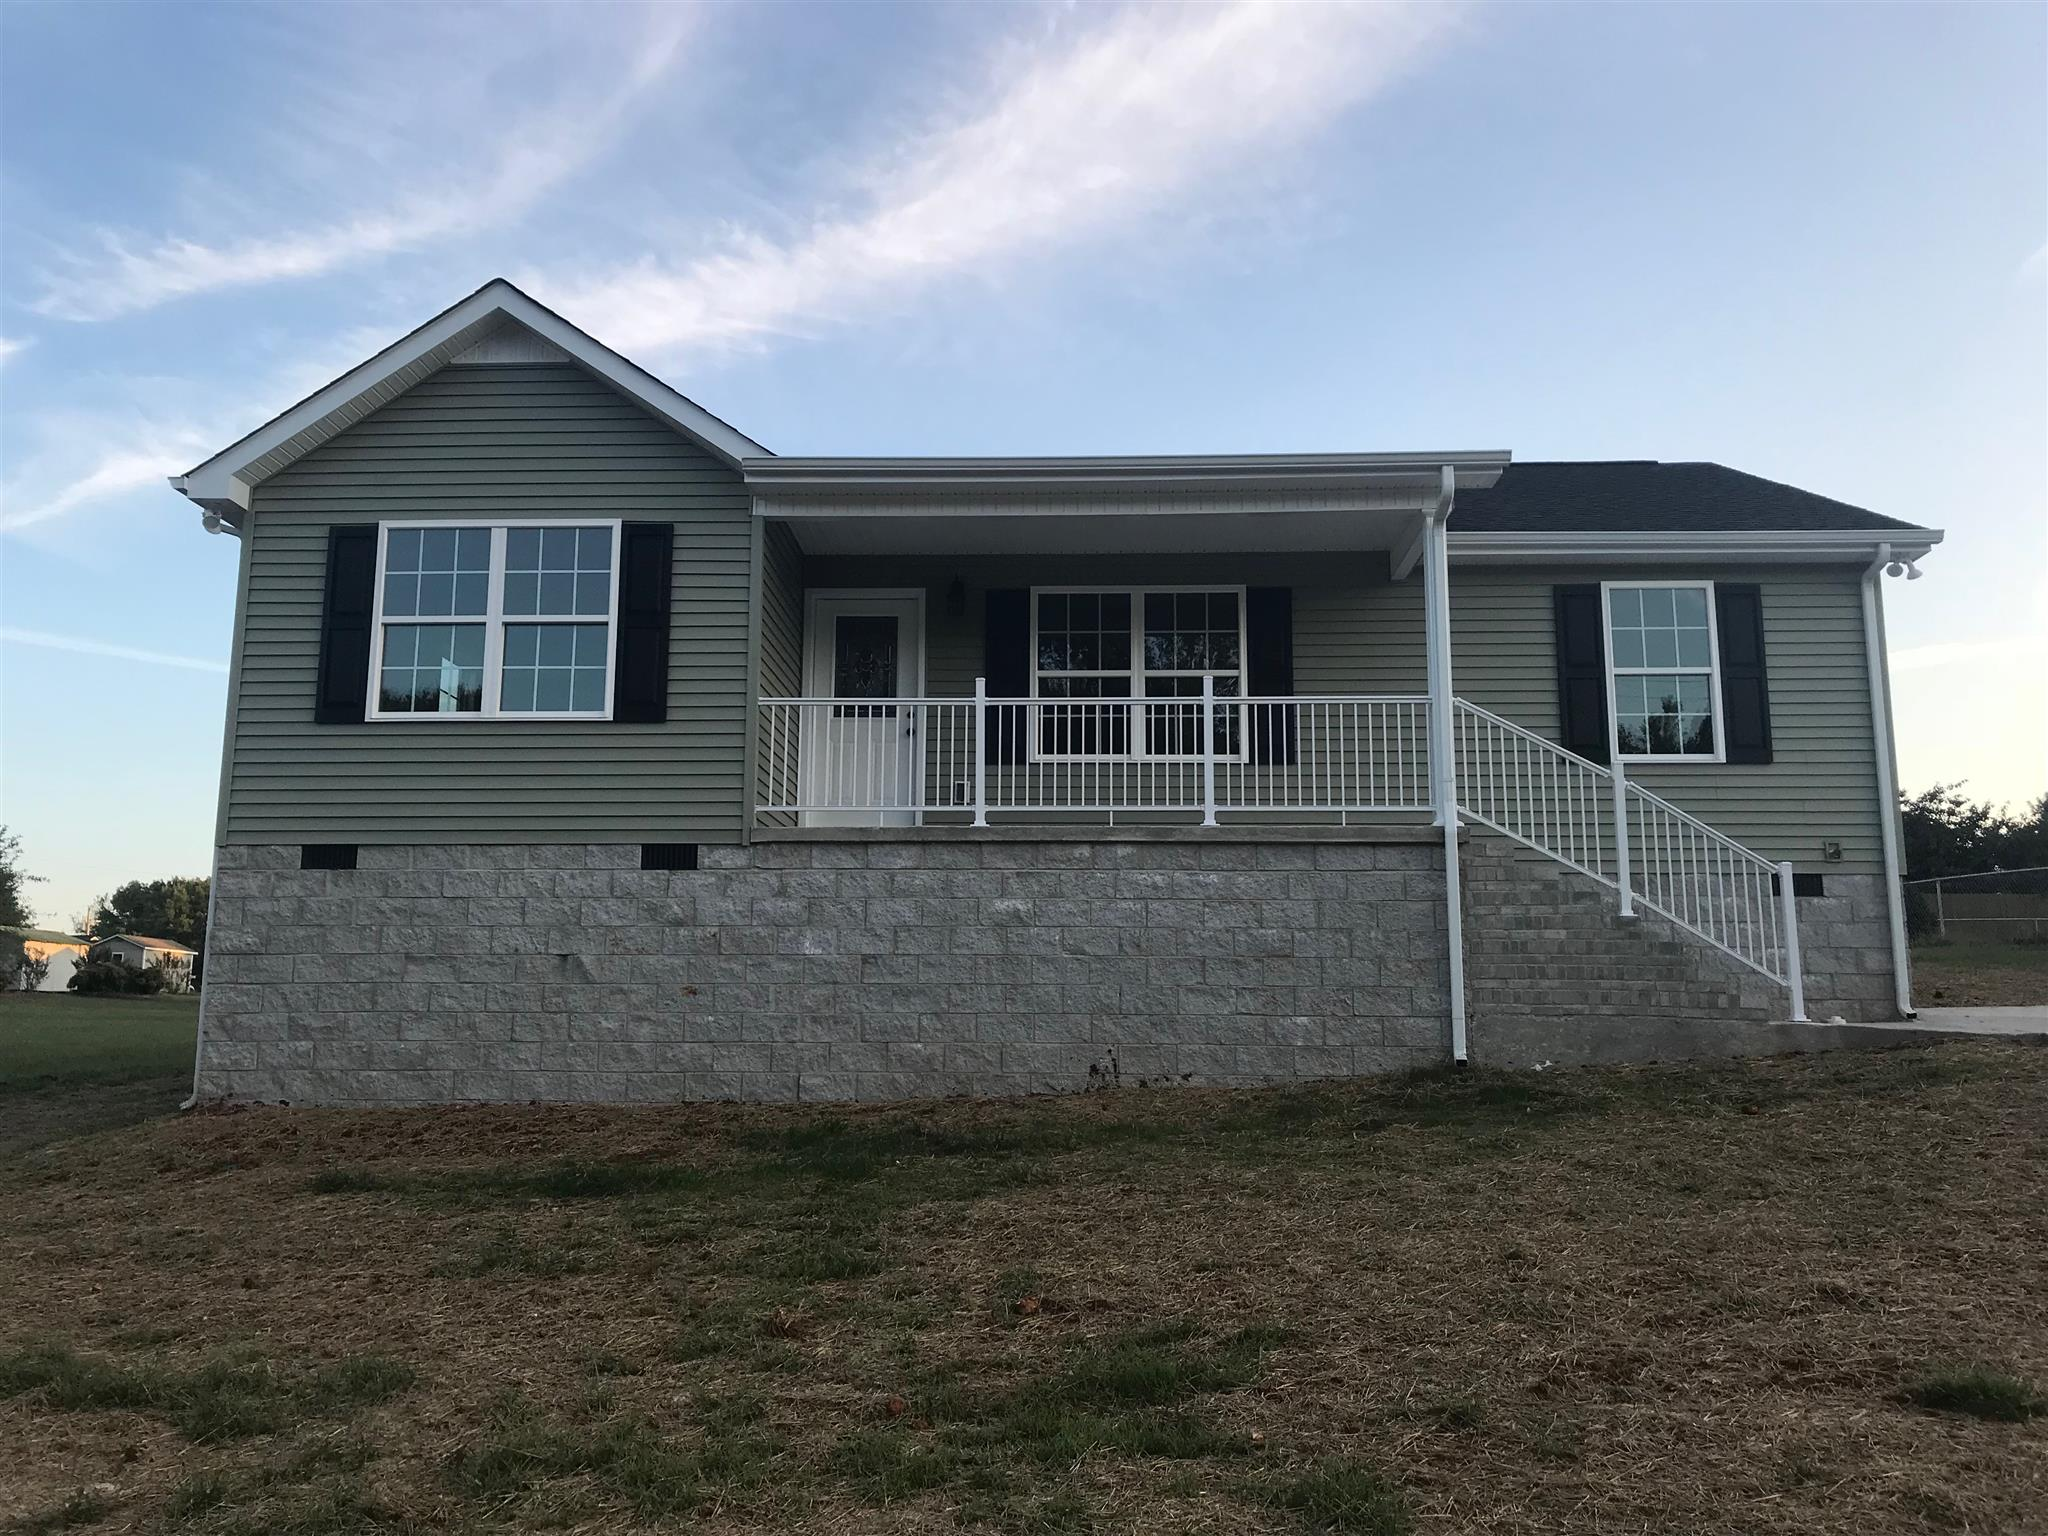 165 Duck Hawk Dr, McMinnville, TN 37110 - McMinnville, TN real estate listing